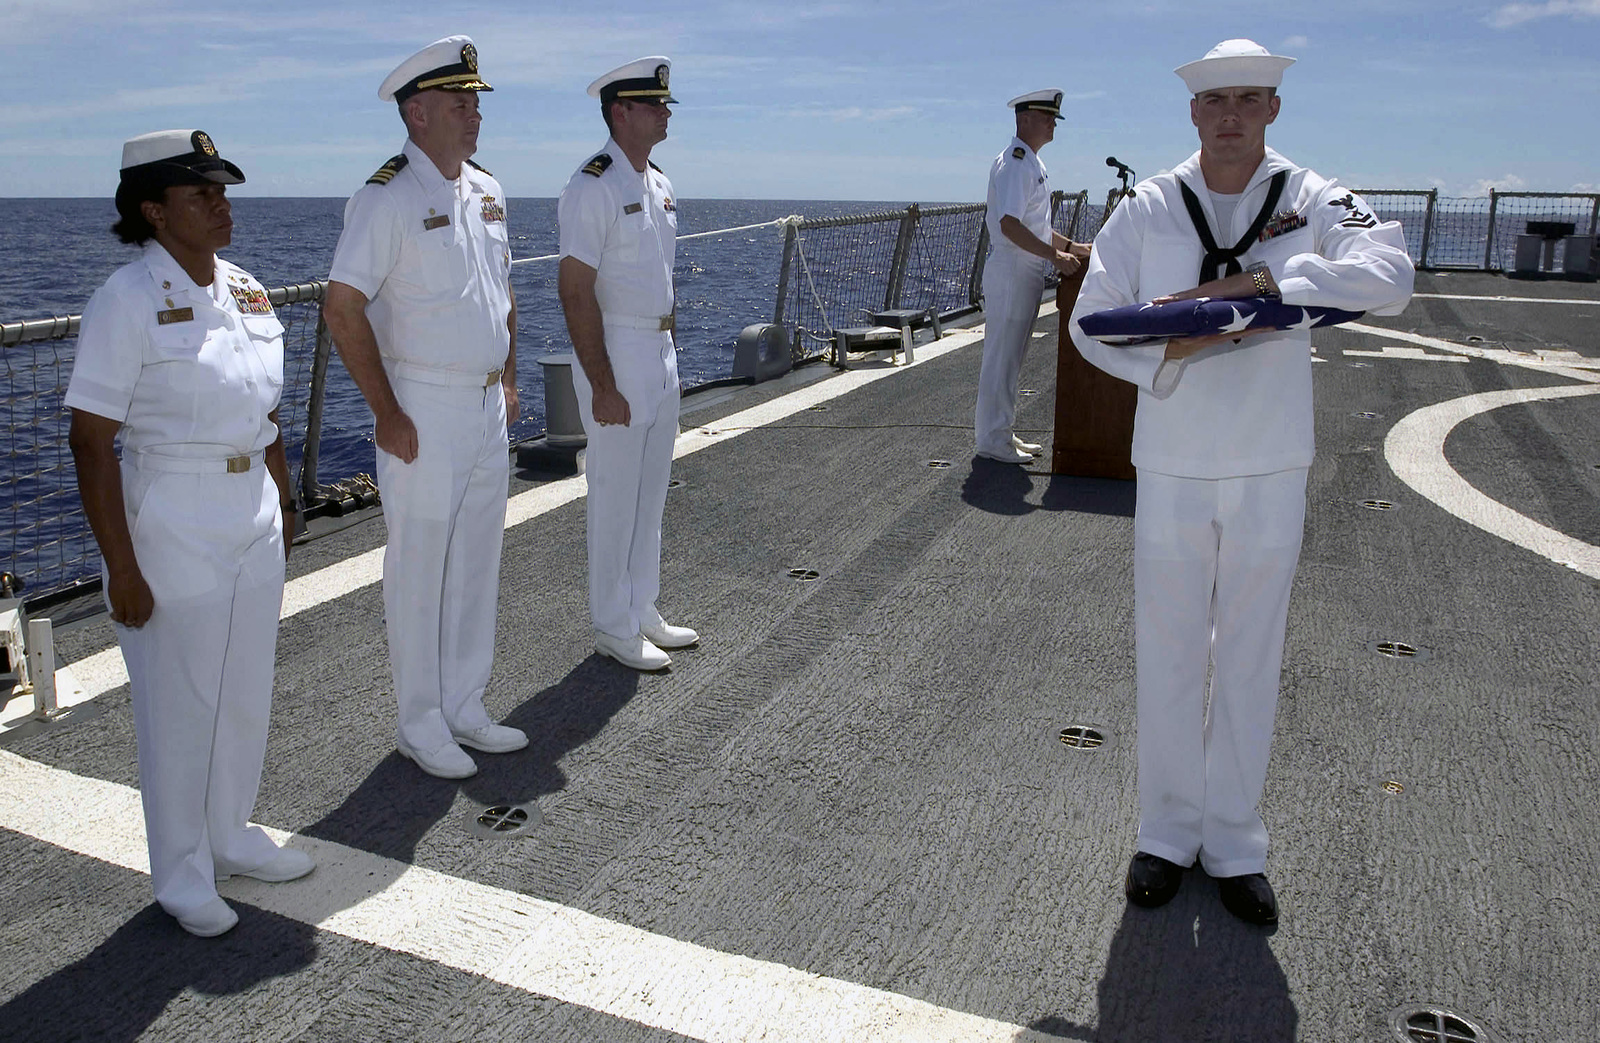 U.S. Navy GUNNER's Mate Second Class Robert Prine secures the folded American Flag, as CMDR. Peter Driscoll, Commanding Officer, Arleigh Burke Class Guided Missile Destroyer USS HOPPER (DDG 70), speaks during a Burial at Sea for retired CHIEF Warrant Officer Charles Paris, Sep. 8, 2006.(U.S. Navy photo by Mass Communication SPECIALIST Second Class John L. Beeman) (Released)